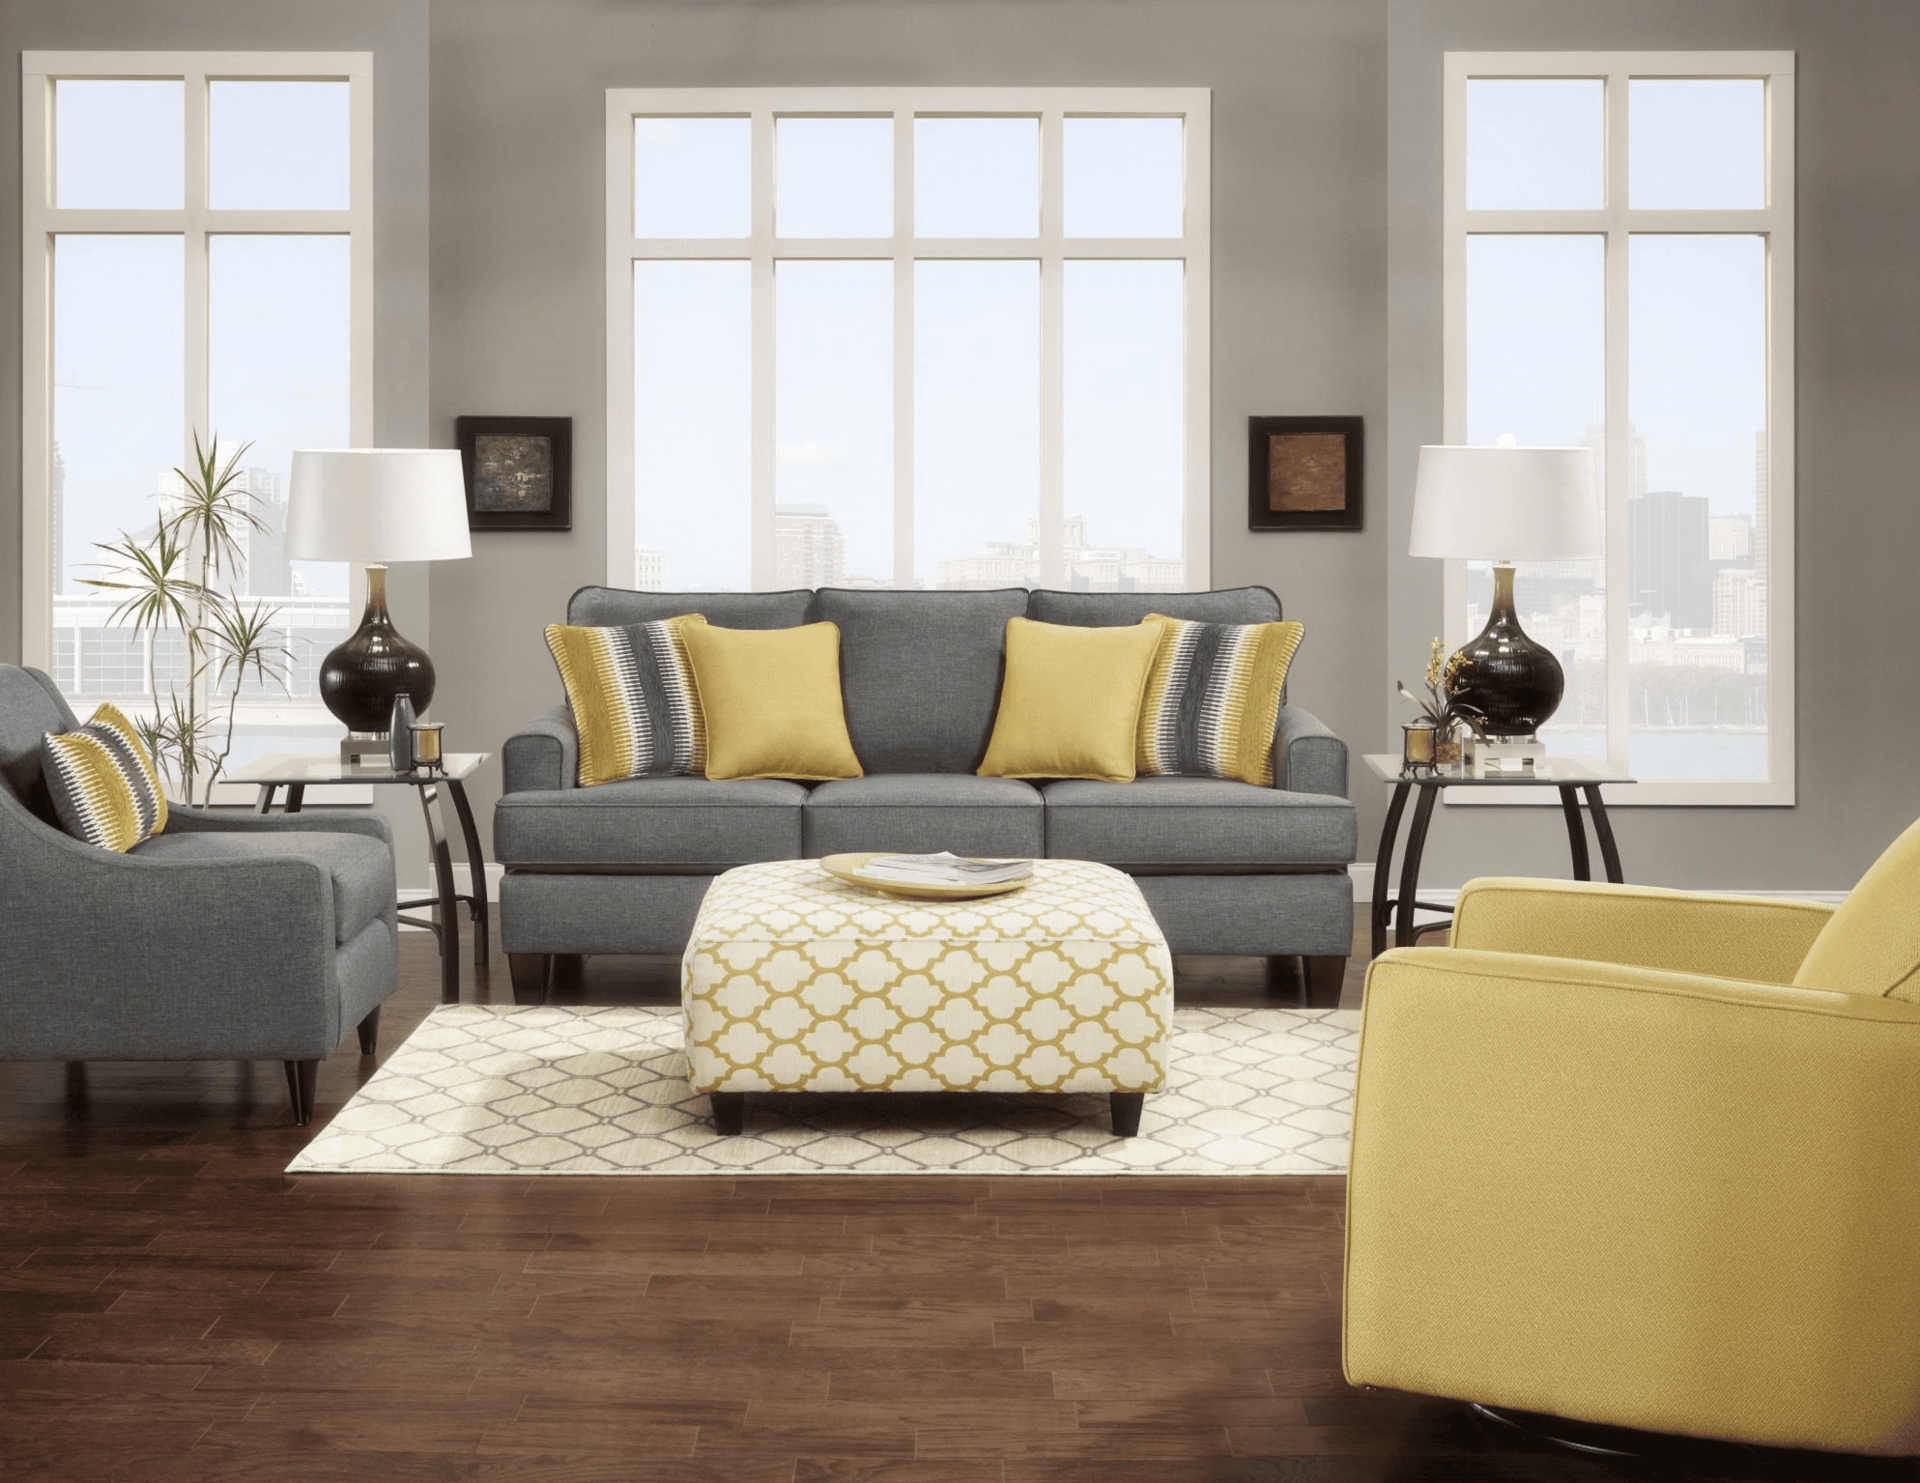 Blair's Discount Furniture In Macon Ga Sectional Sofas (Image 3 of 10)